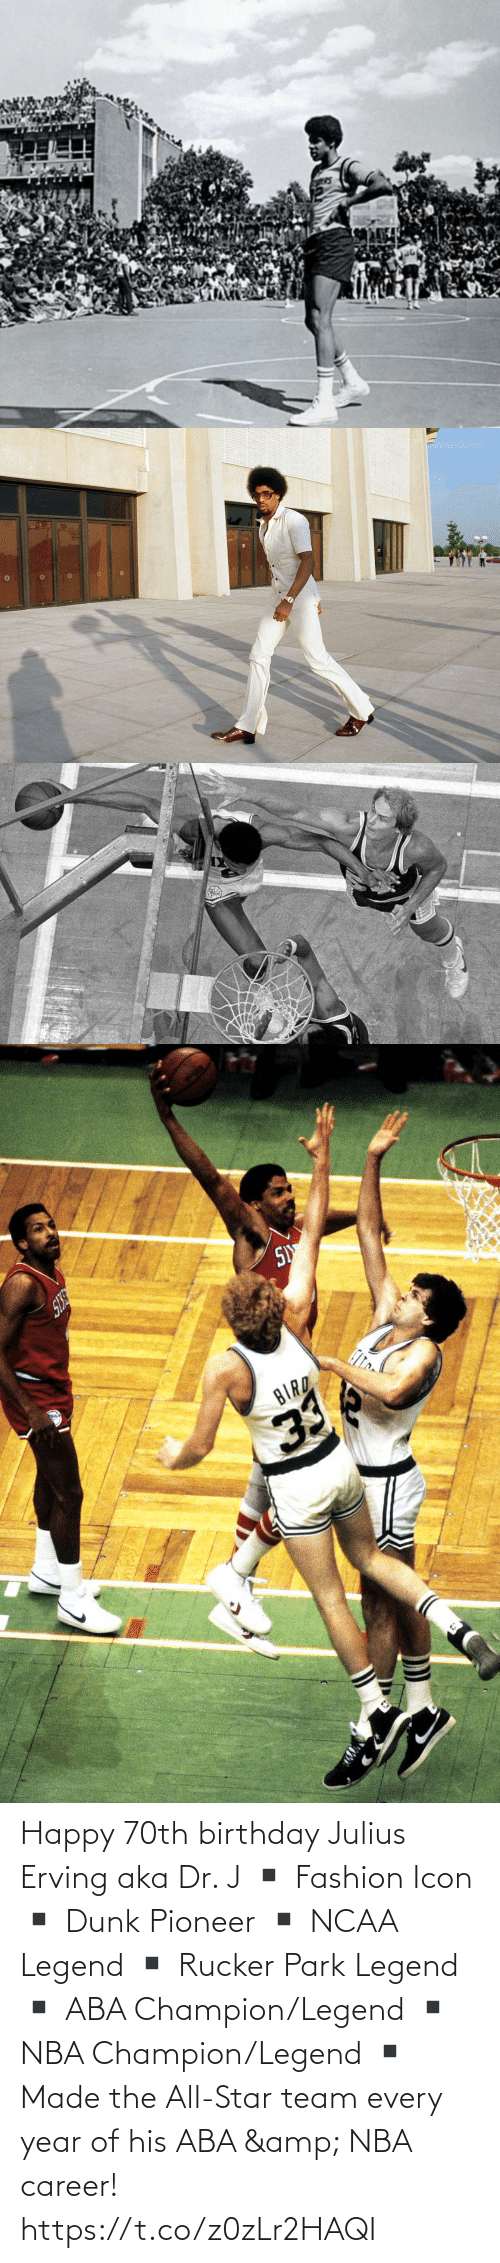 Dunk: Happy 70th birthday Julius Erving aka Dr. J  ▪️ Fashion Icon ▪️ Dunk Pioneer ▪️ NCAA Legend ▪️ Rucker Park Legend ▪️ ABA Champion/Legend ▪️ NBA Champion/Legend ▪️ Made the All-Star team every year of his ABA & NBA career! https://t.co/z0zLr2HAQI